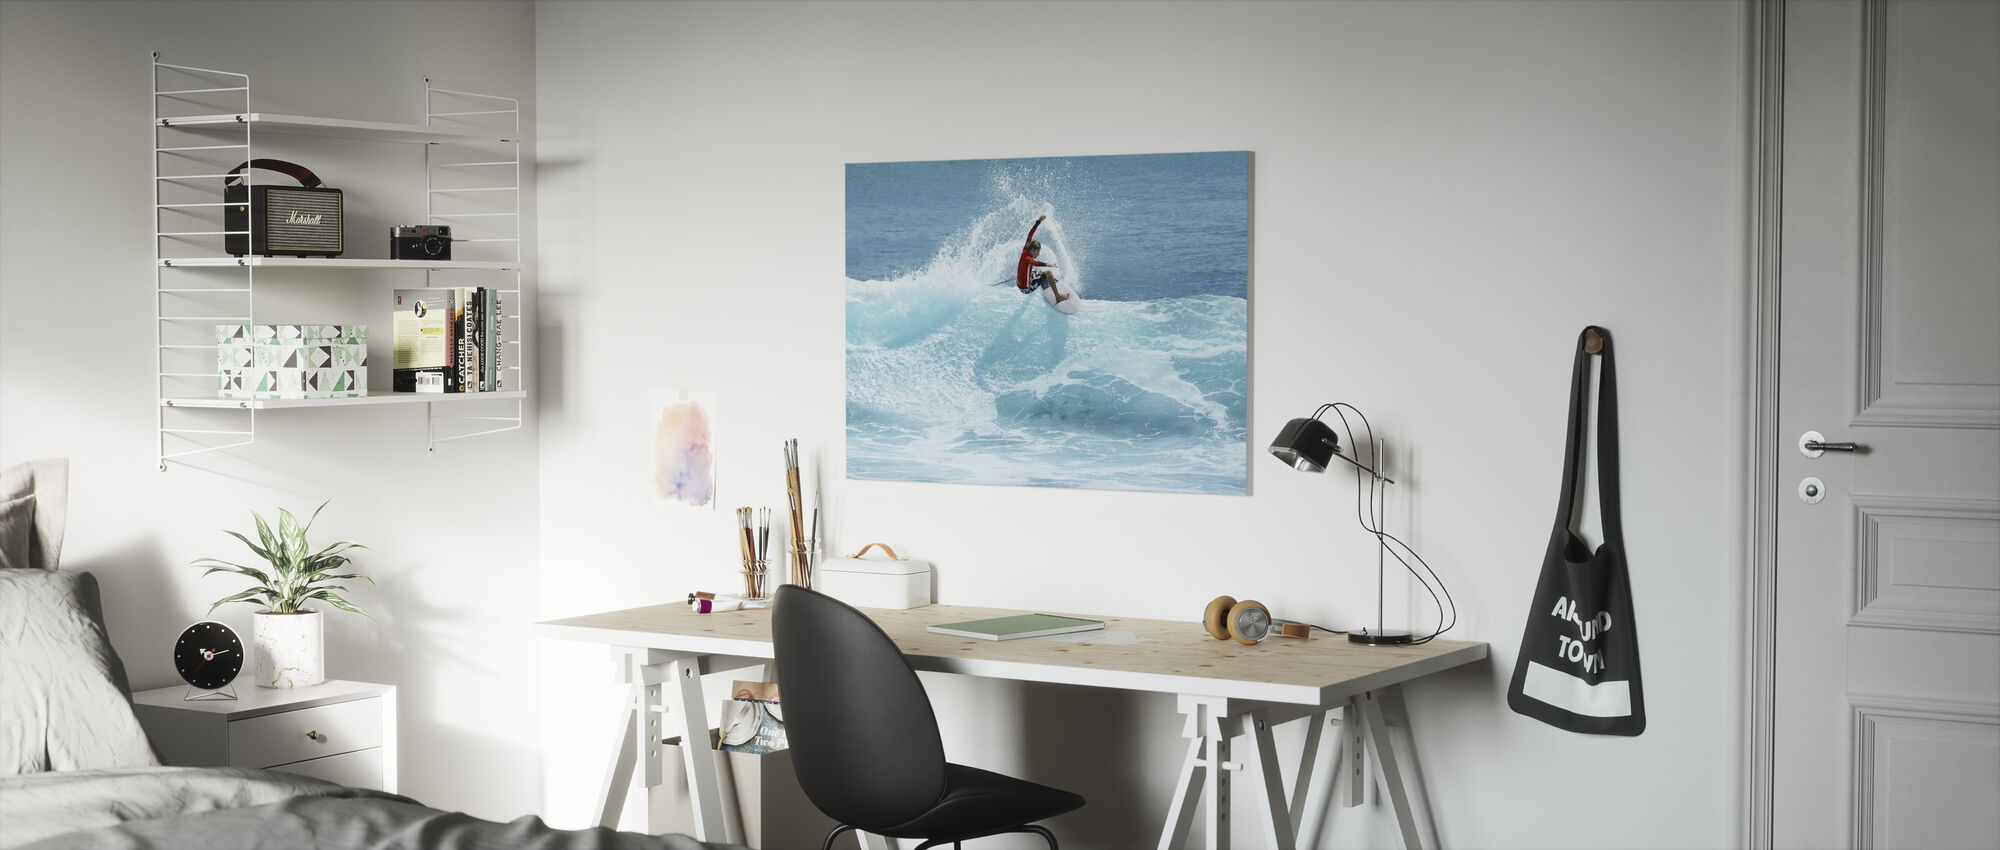 Surfer Carving Top of Wave - Canvas print - Kids Room